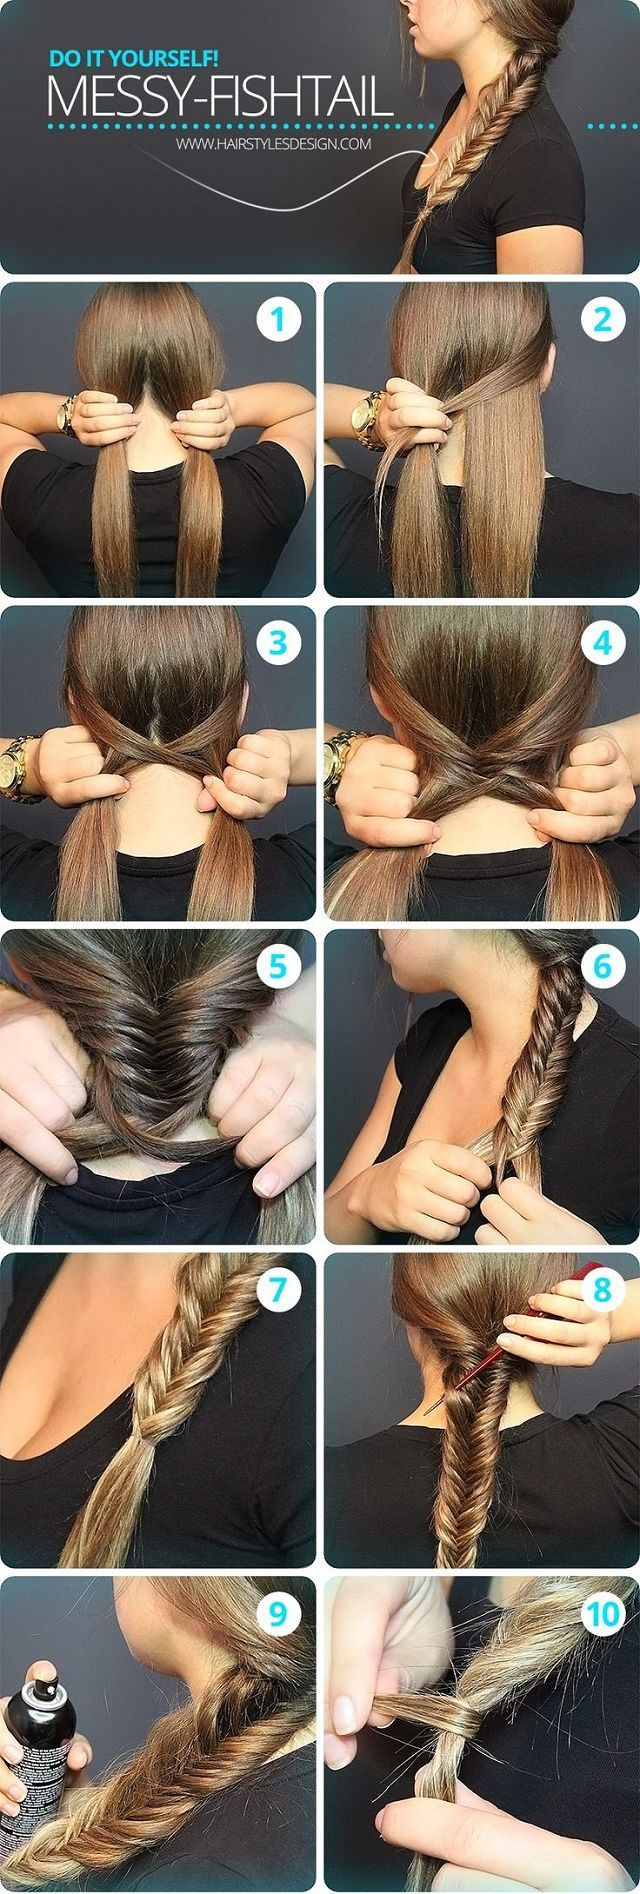 How to Make a Fishtail Braid. Definitely going to try this on my hair